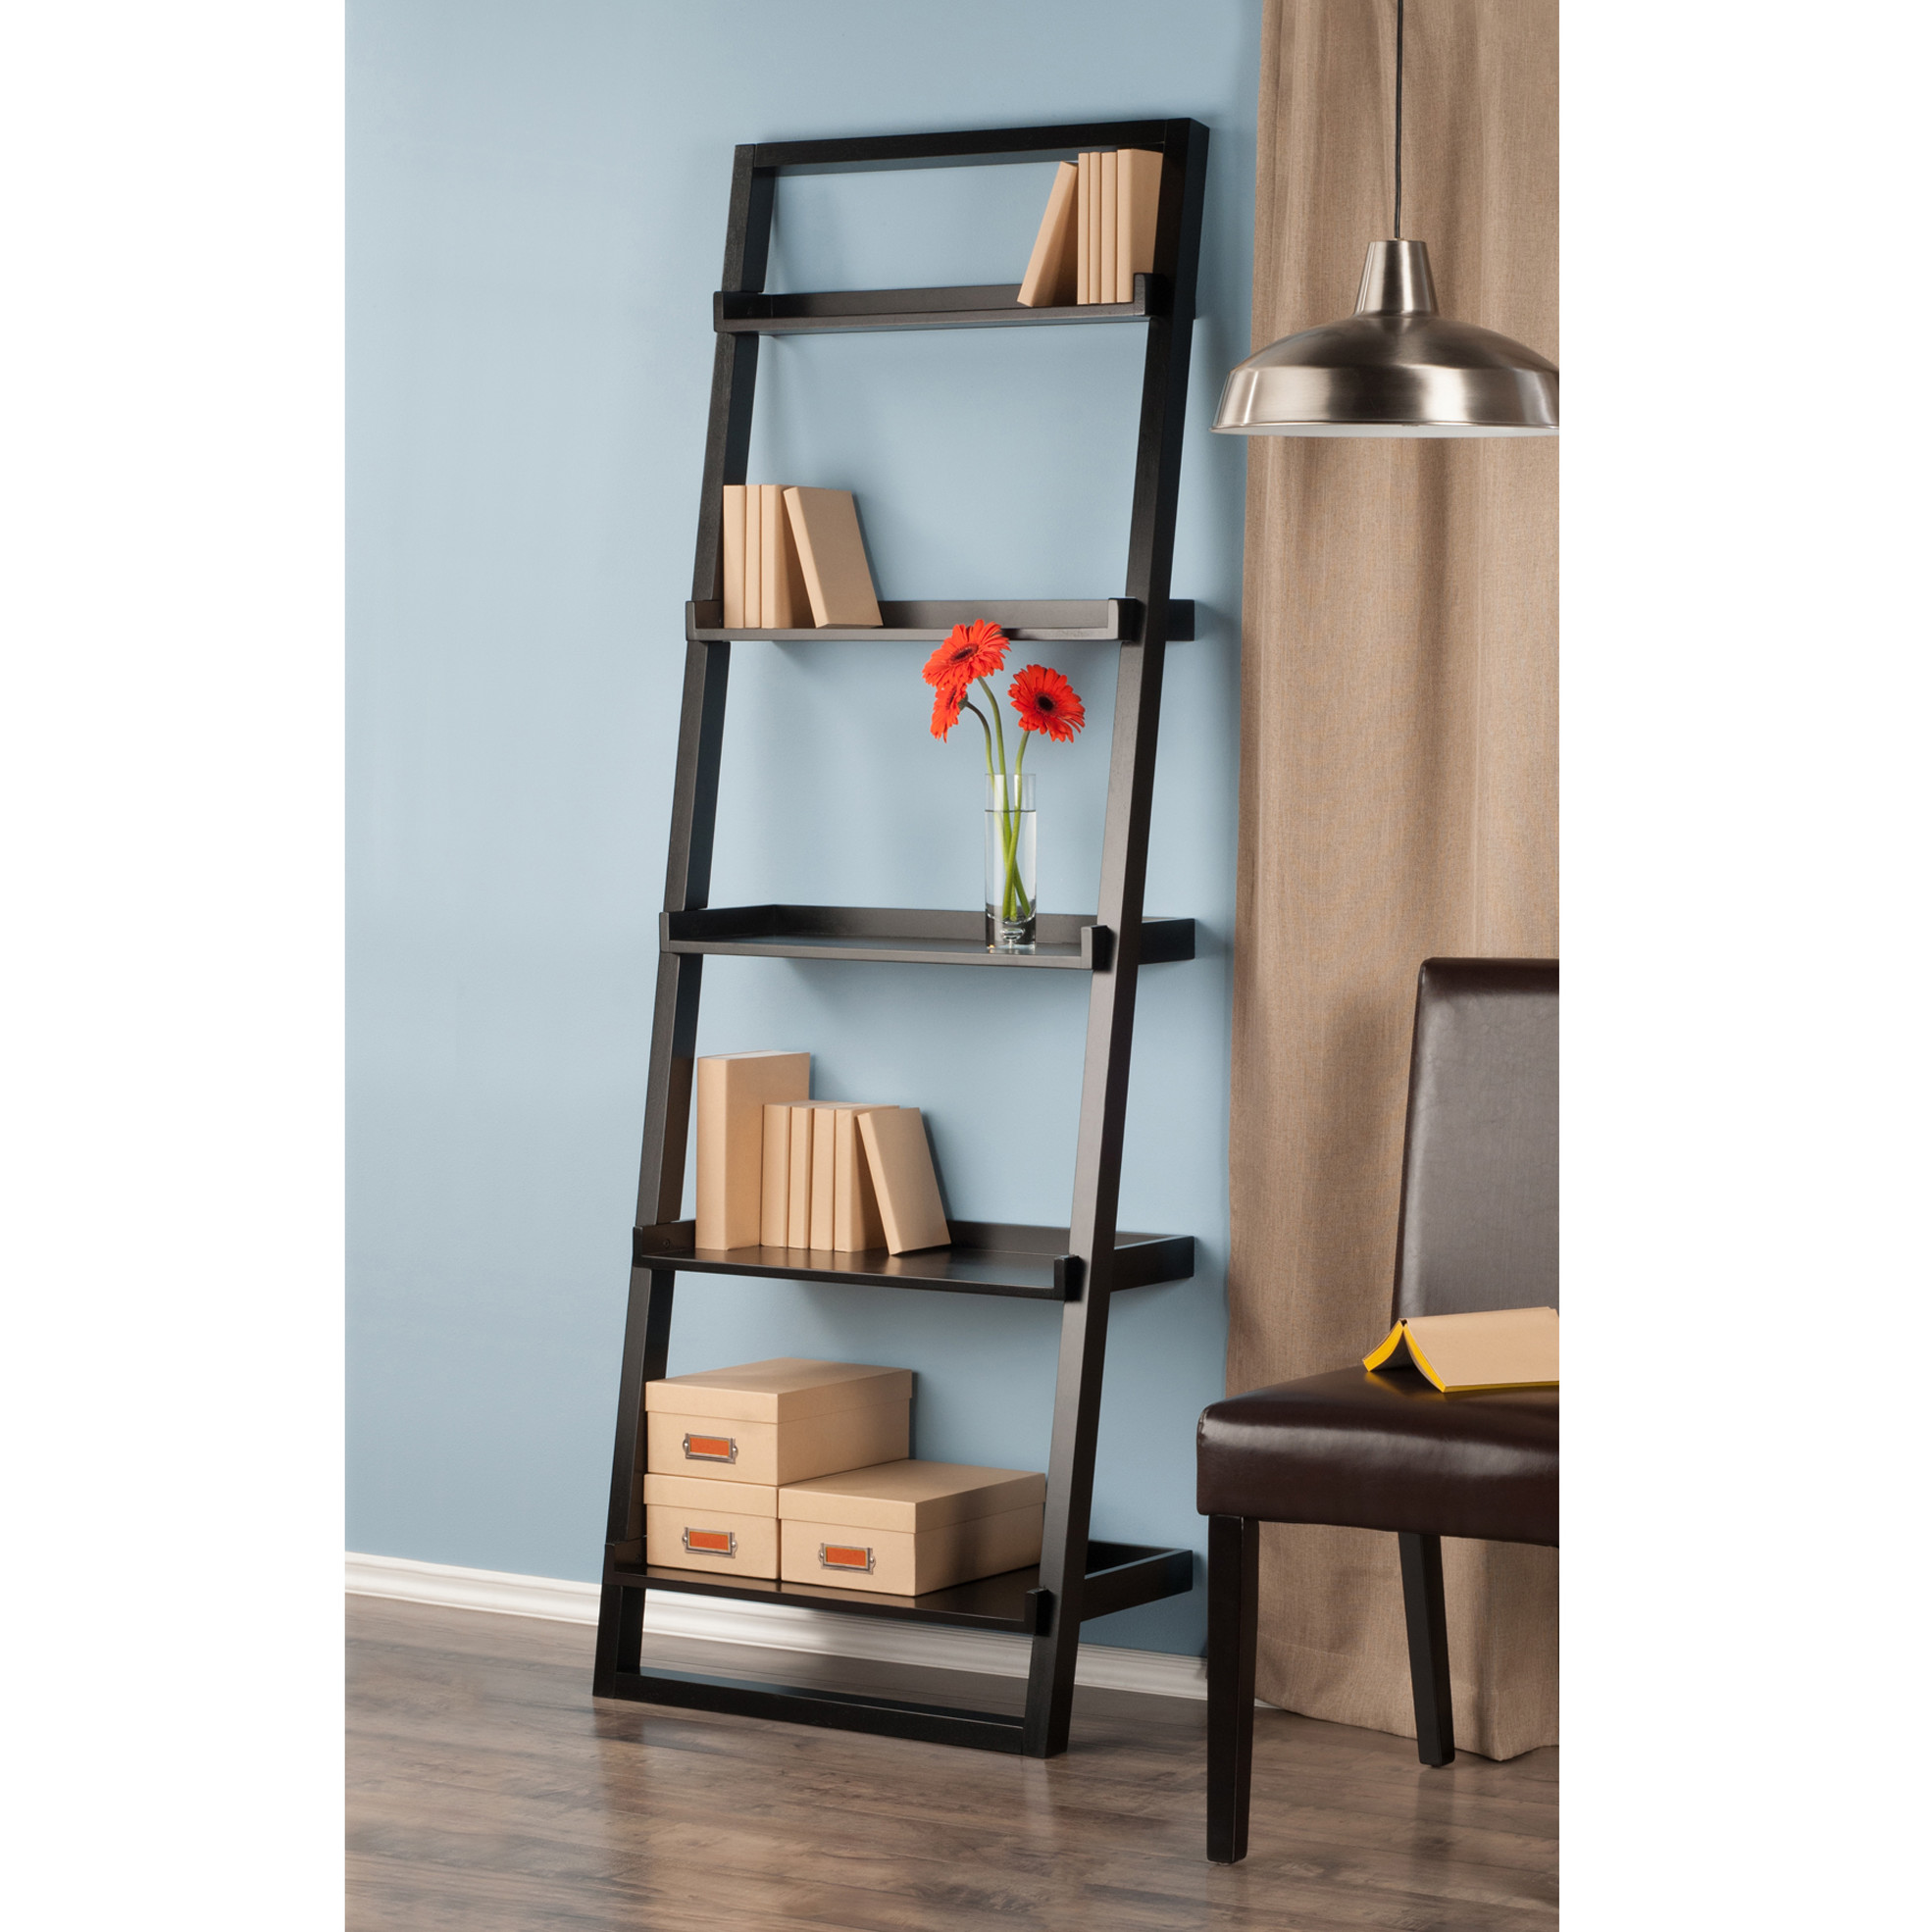 Charmant Winsome Wood 29525 Black 5 Tier Bailey Leaning Shelving Unit   Walmart.com